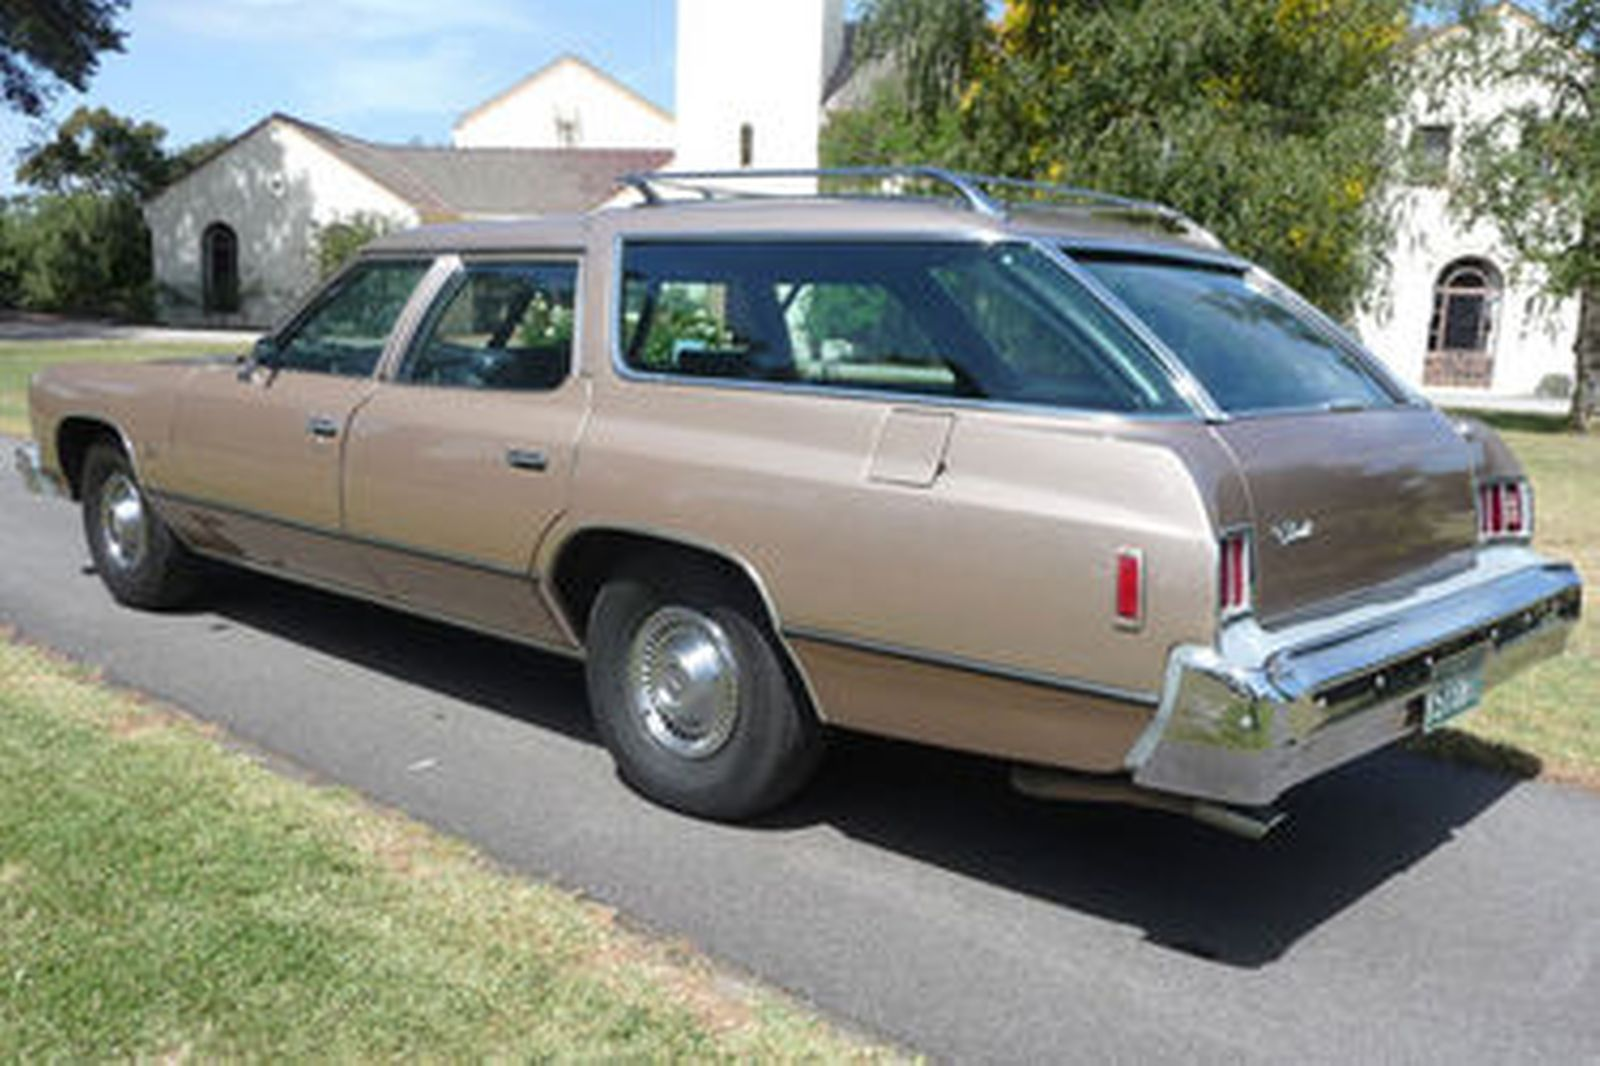 New Chevy Impala >> Sold: Chevrolet Impala (Hearse) Wagon Auctions - Lot 8 - Shannons